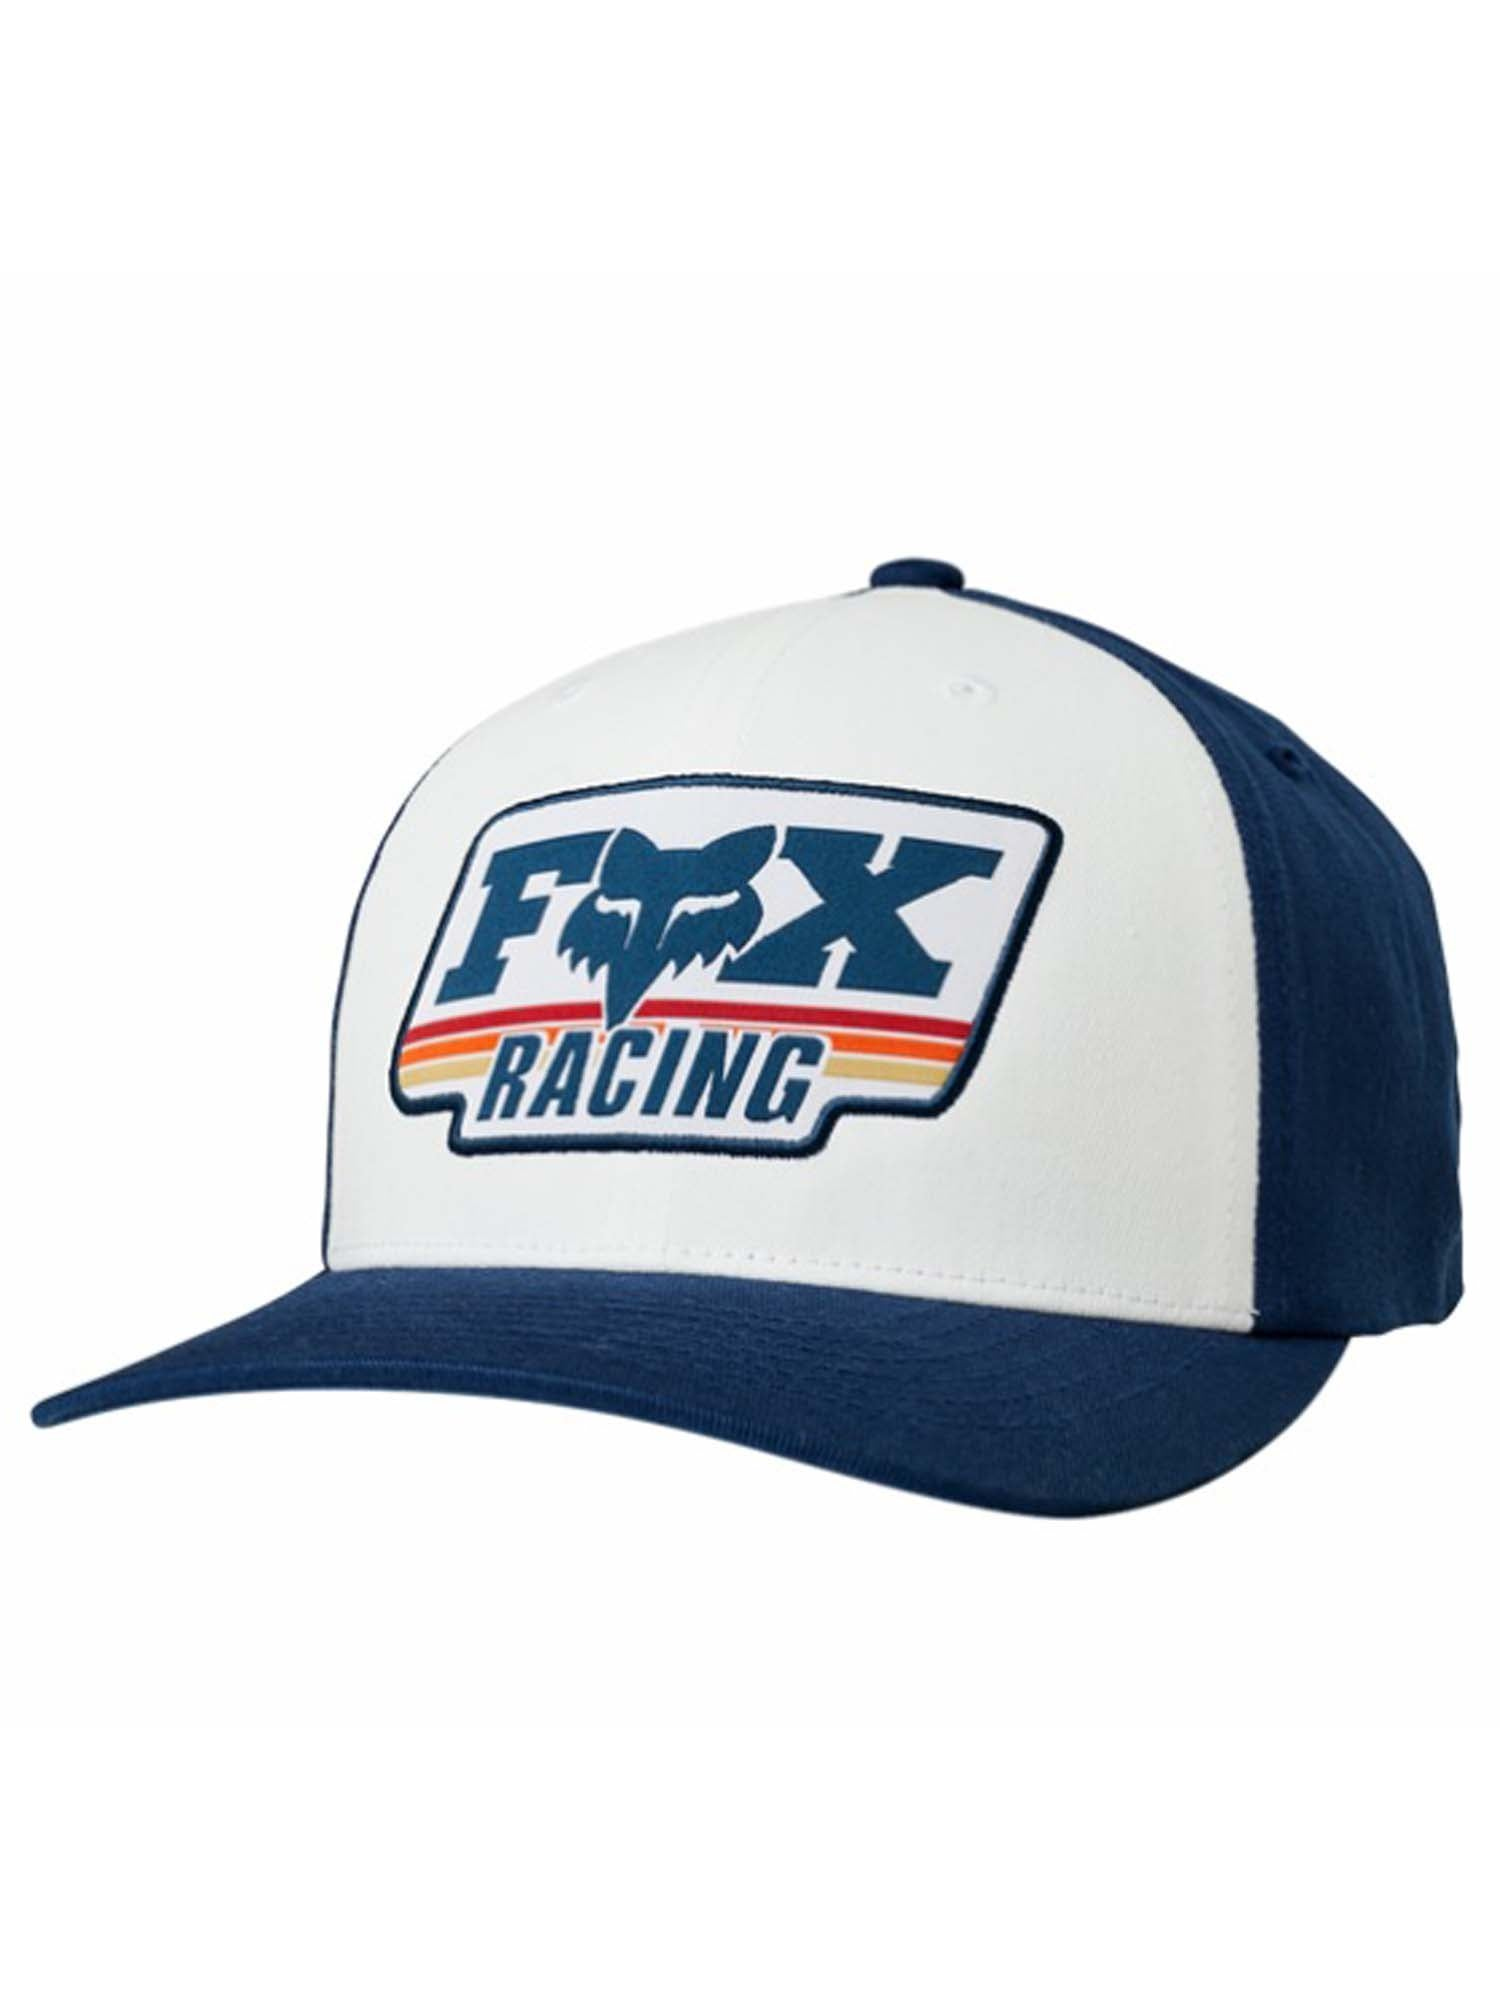 ad83b46342b Details about Fox Racing Men s Throwback 110 Snapback Hat